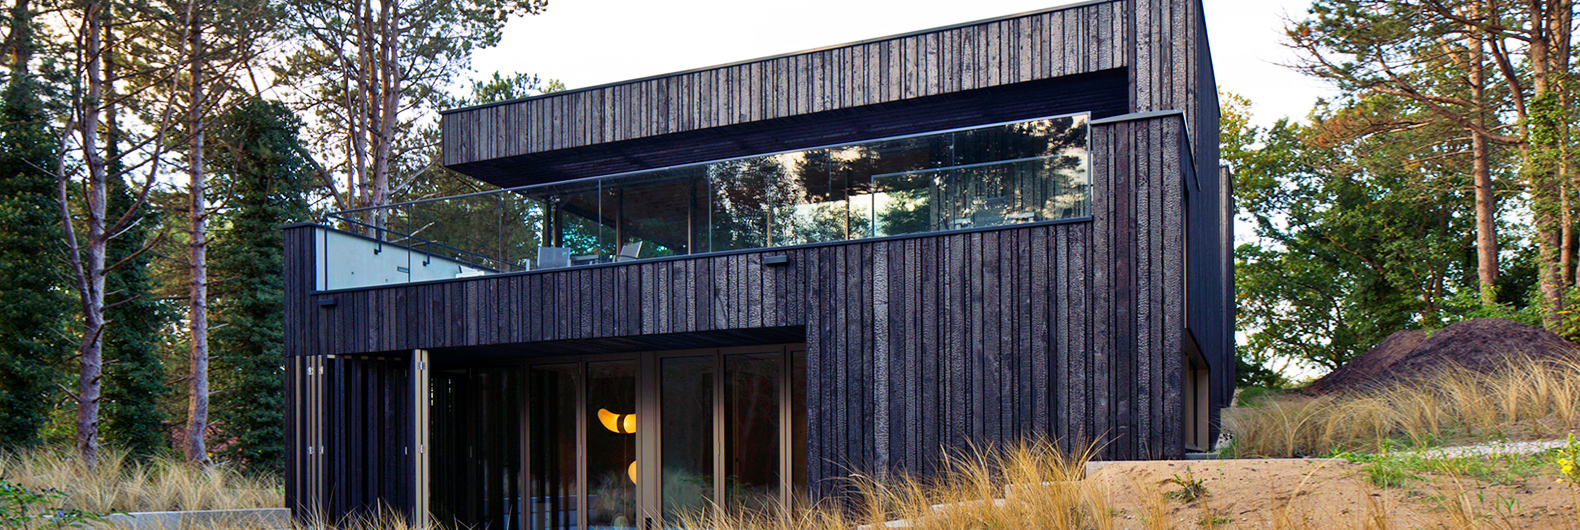 Zero-energy timber and steel home is buried into a natural dune